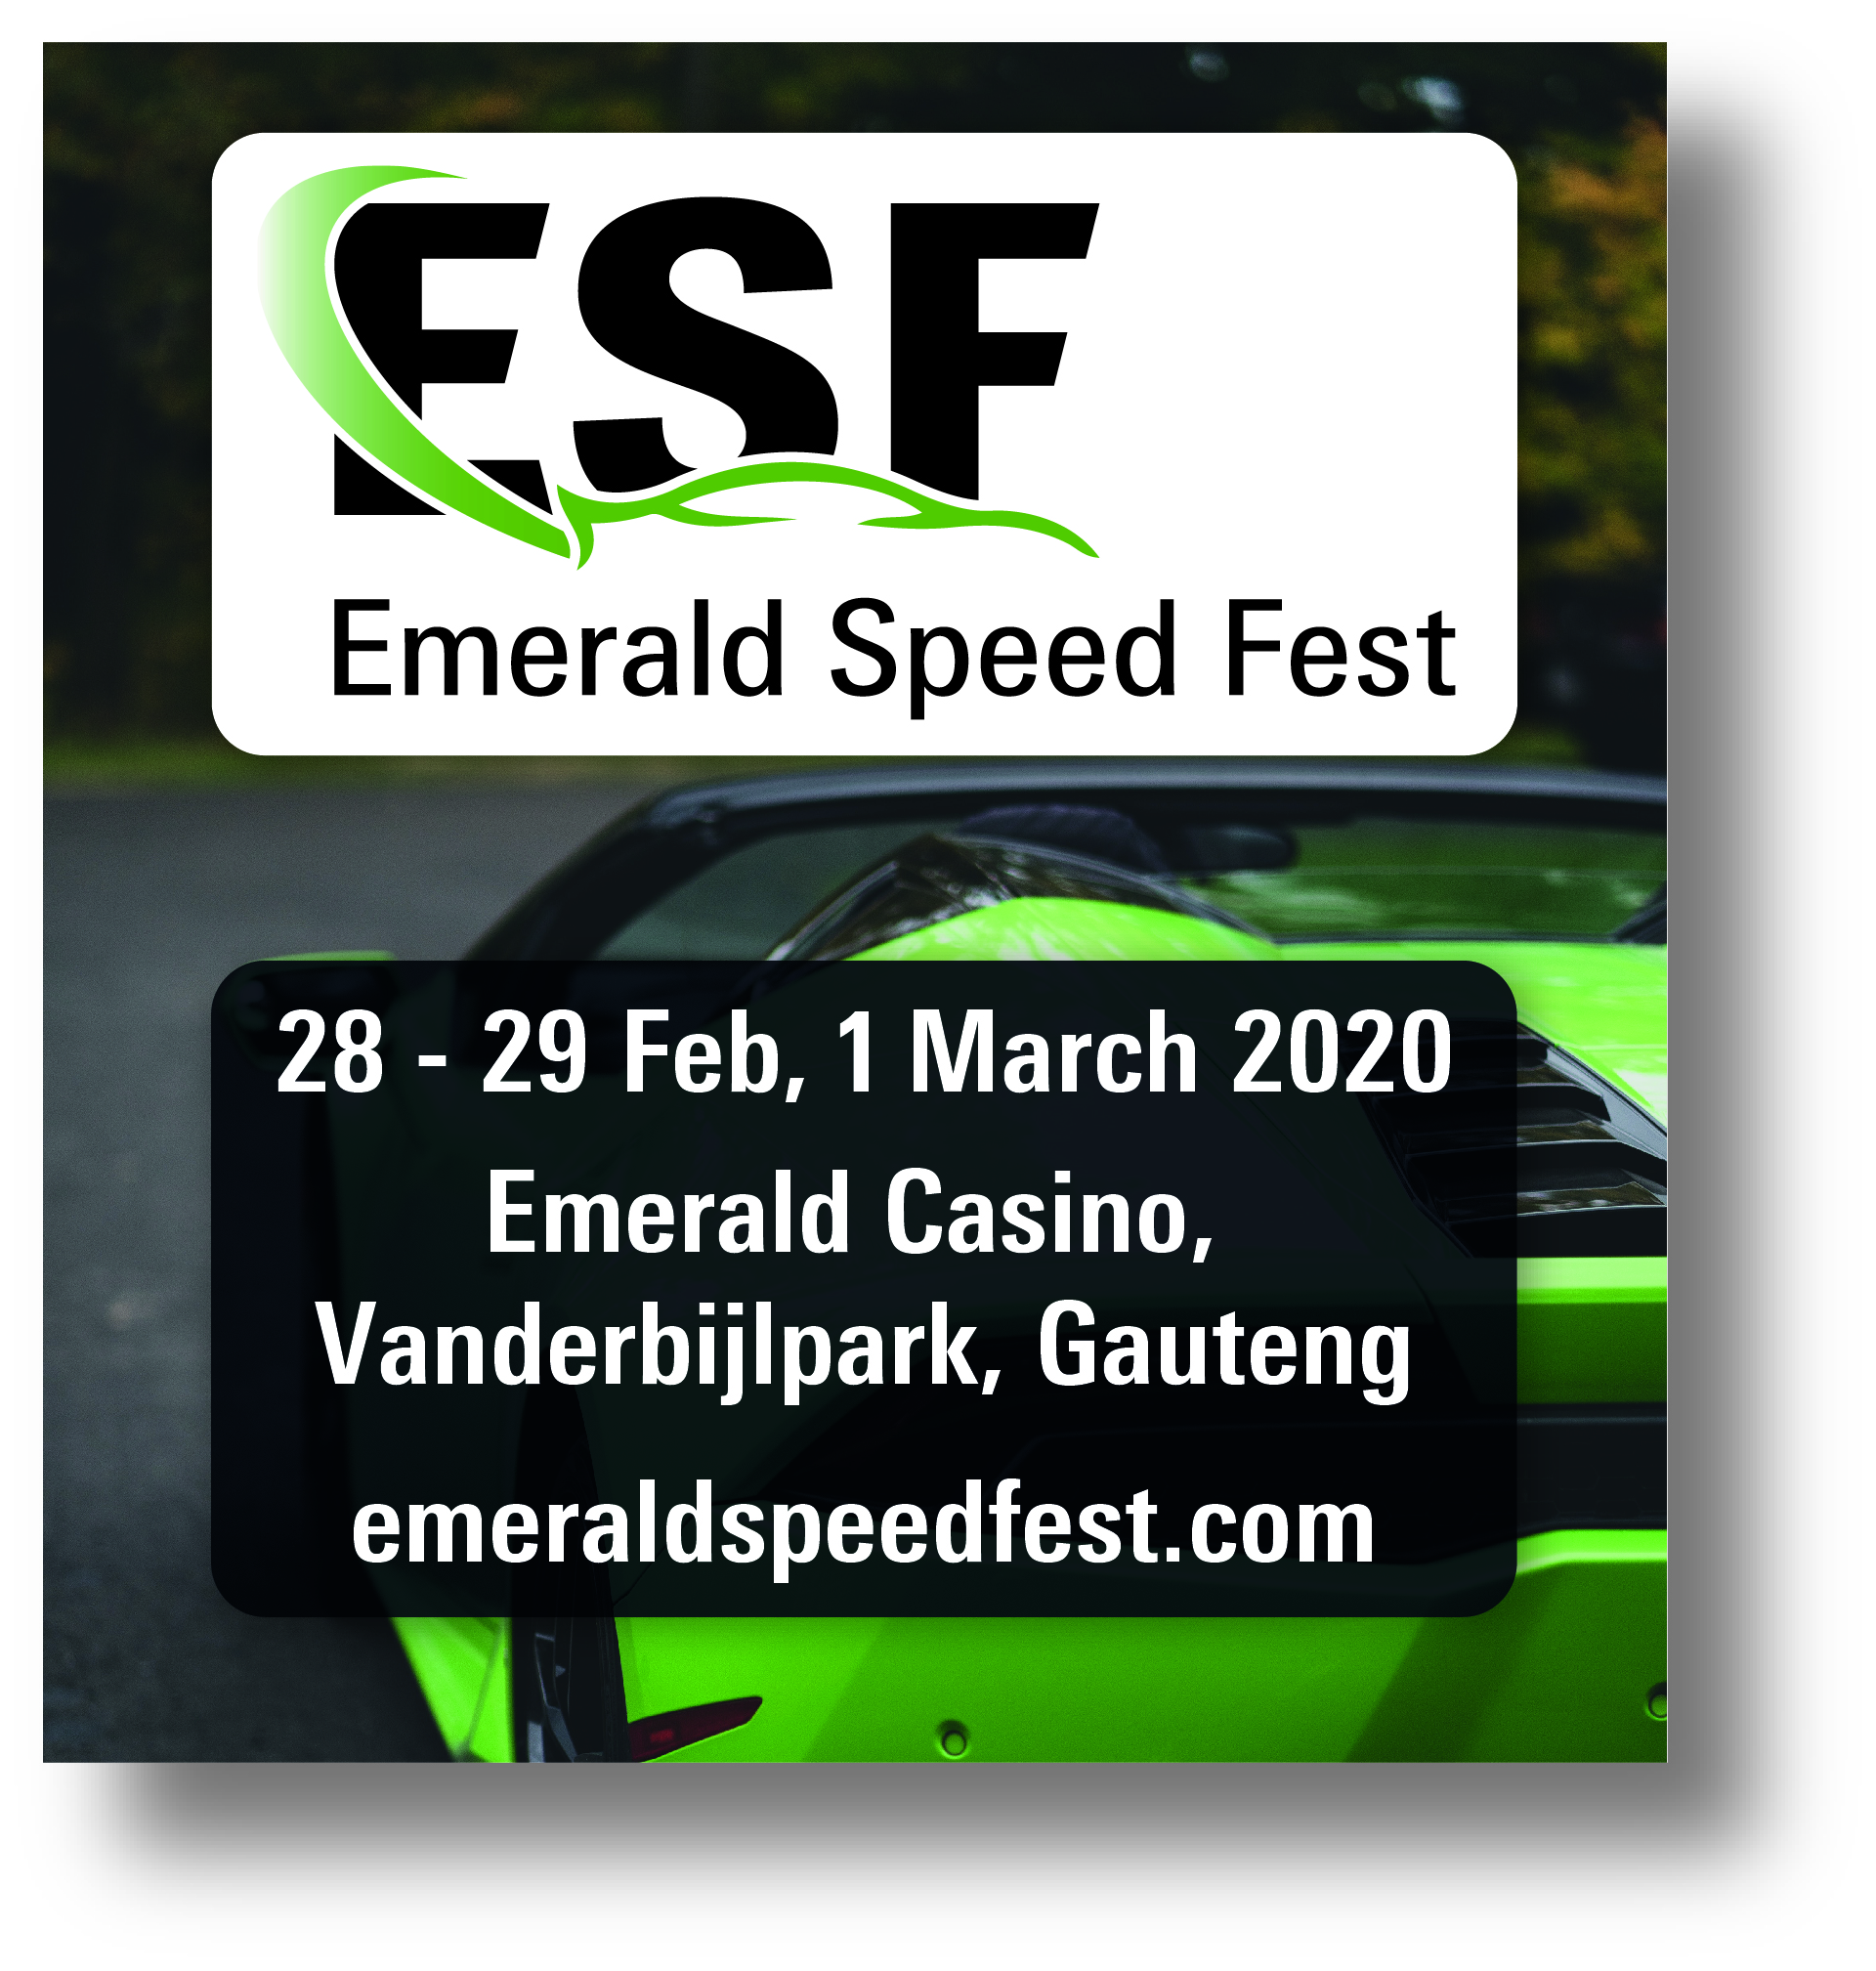 Emerald Speed Fest